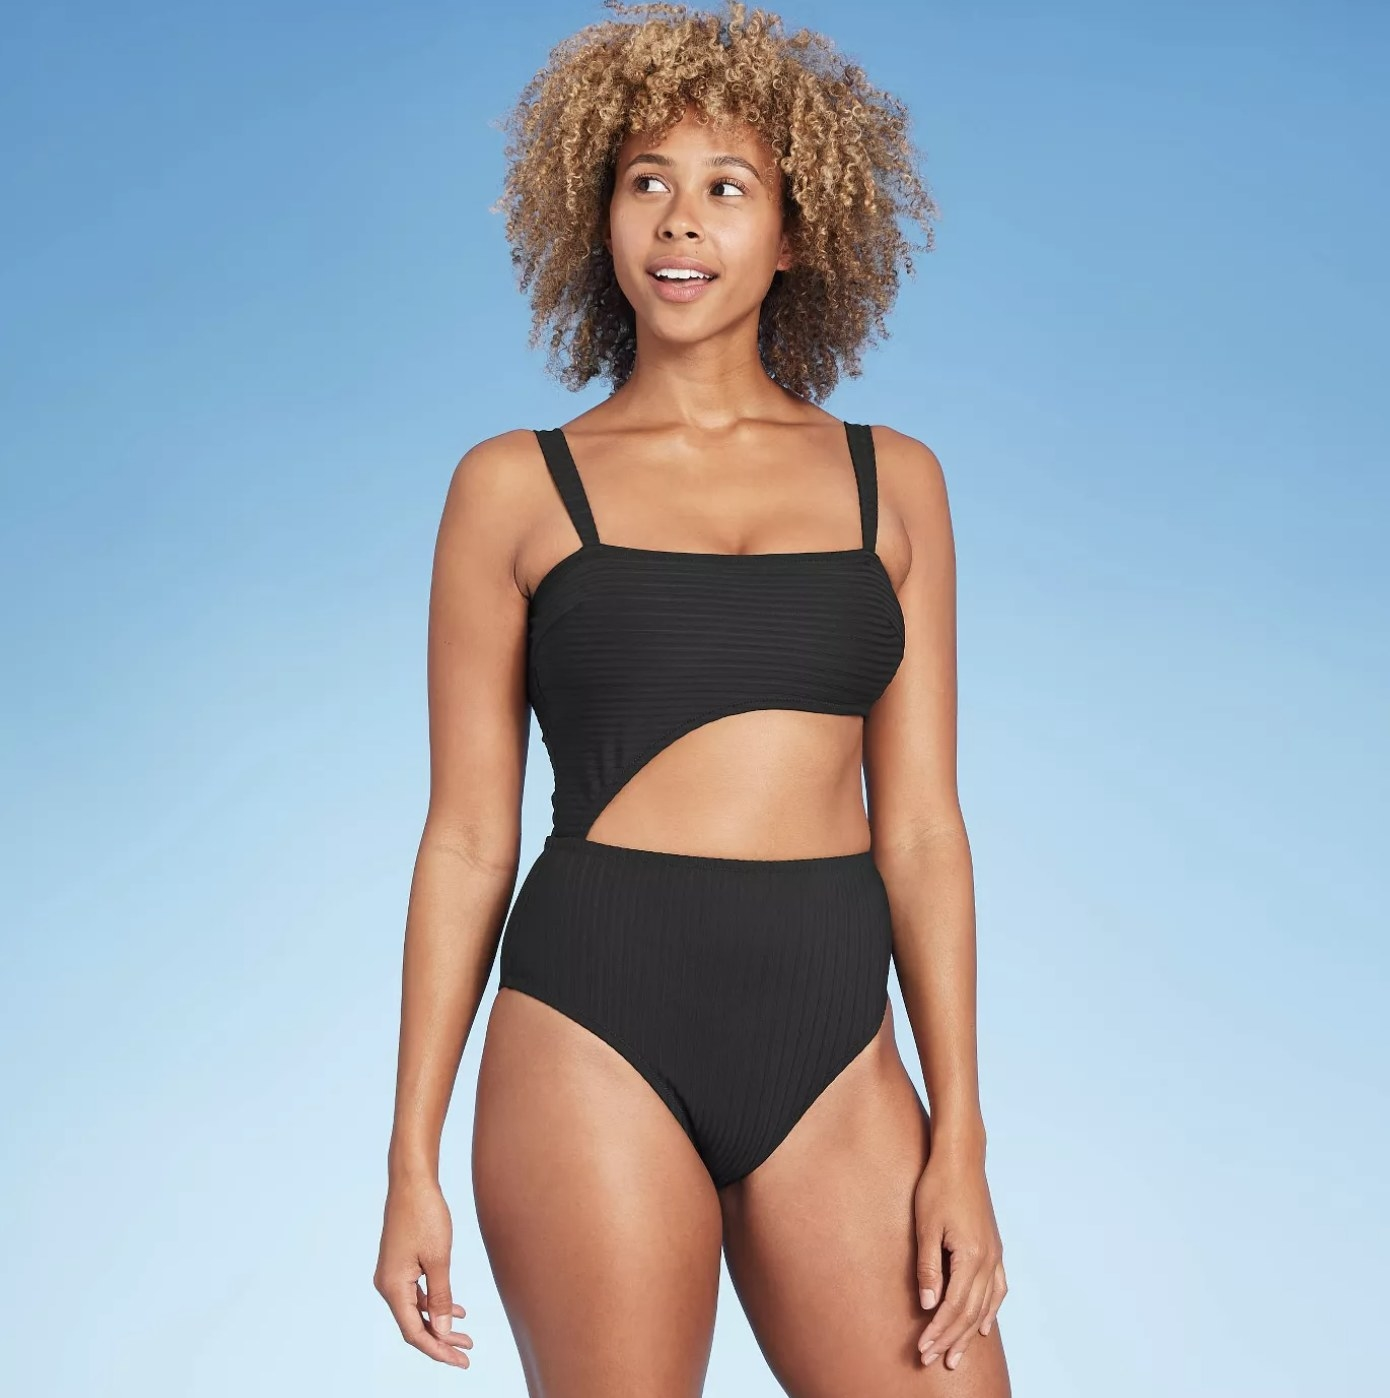 Model is wearing a black asymmetrical one-piece bathing suit